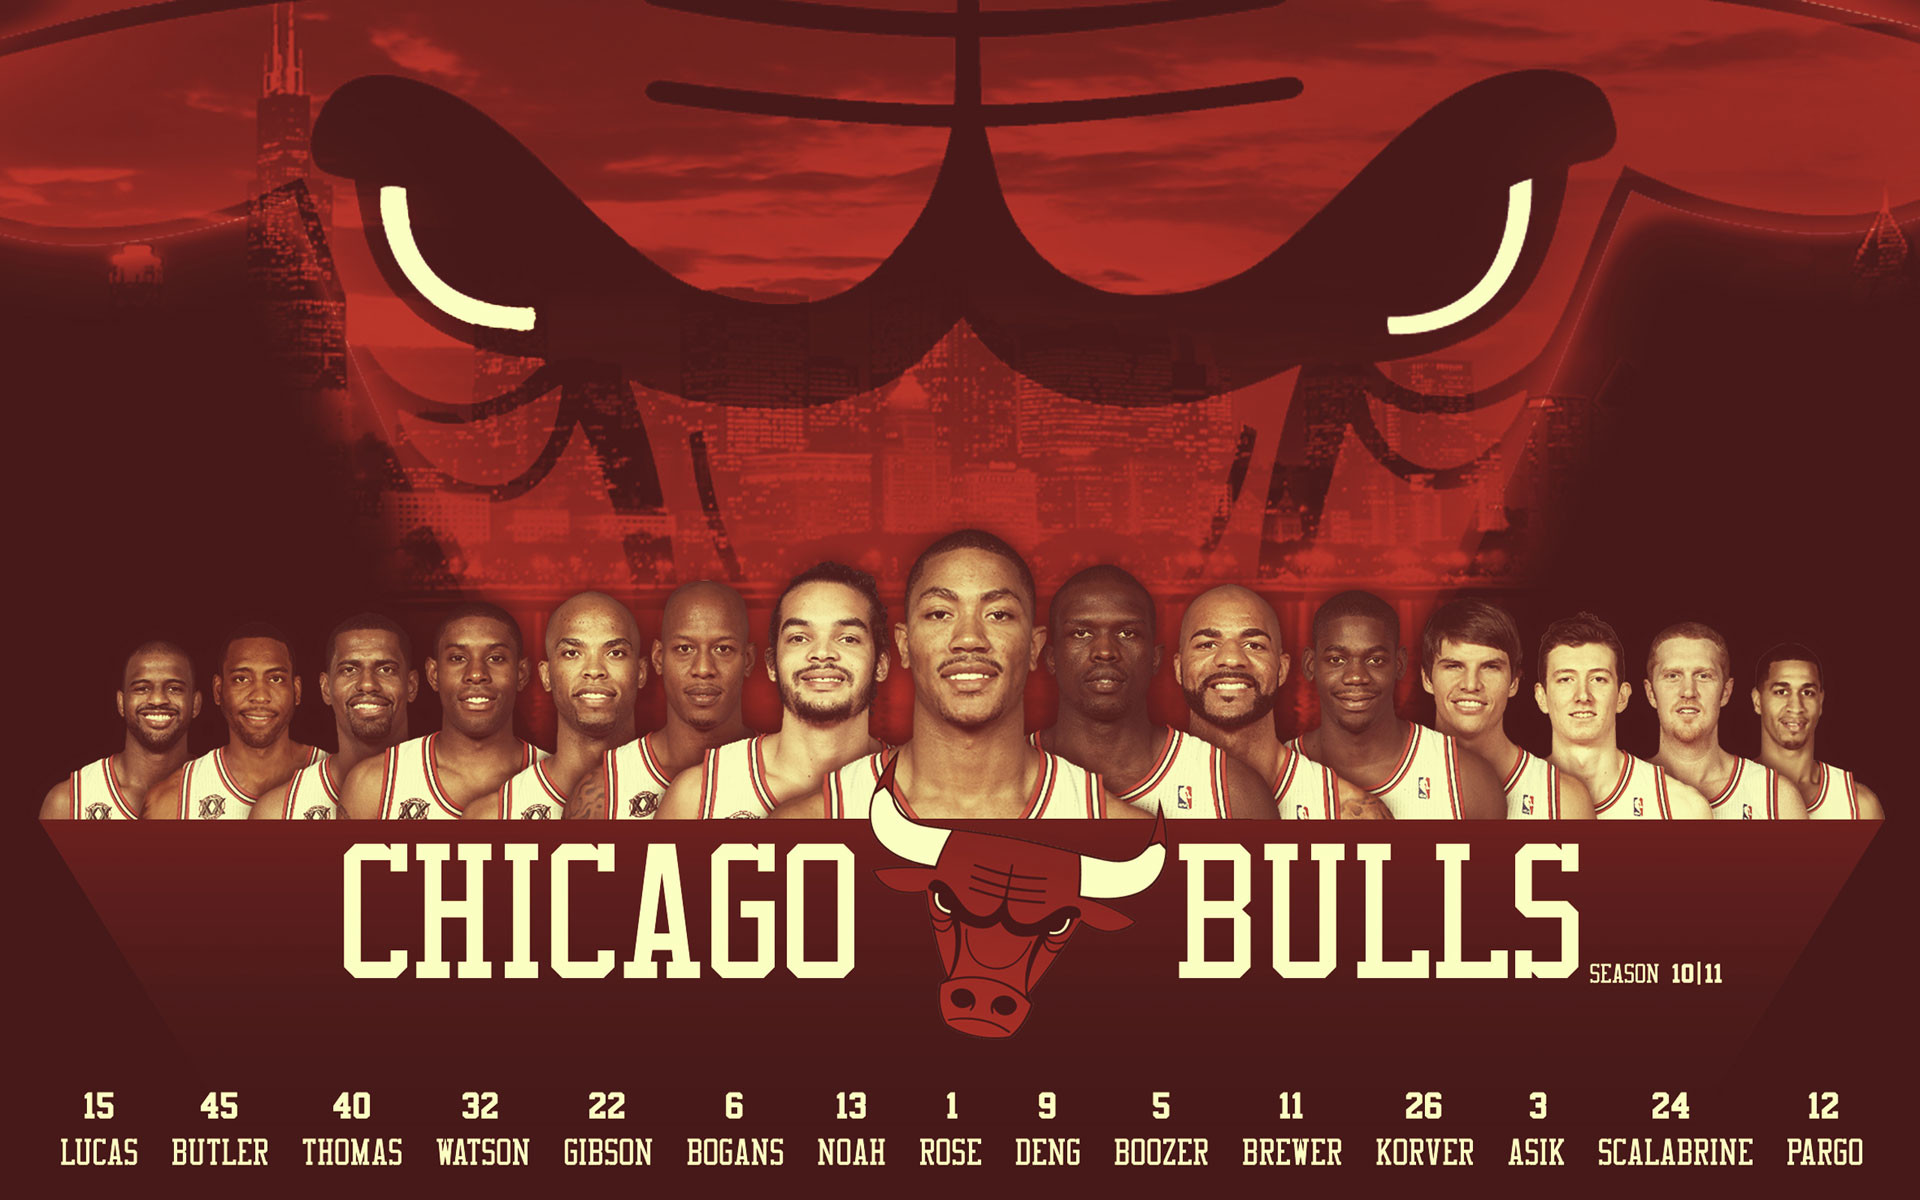 1920x1200 tags chicago bulls basketball full hd bulls team chicago date 14 09 07 .